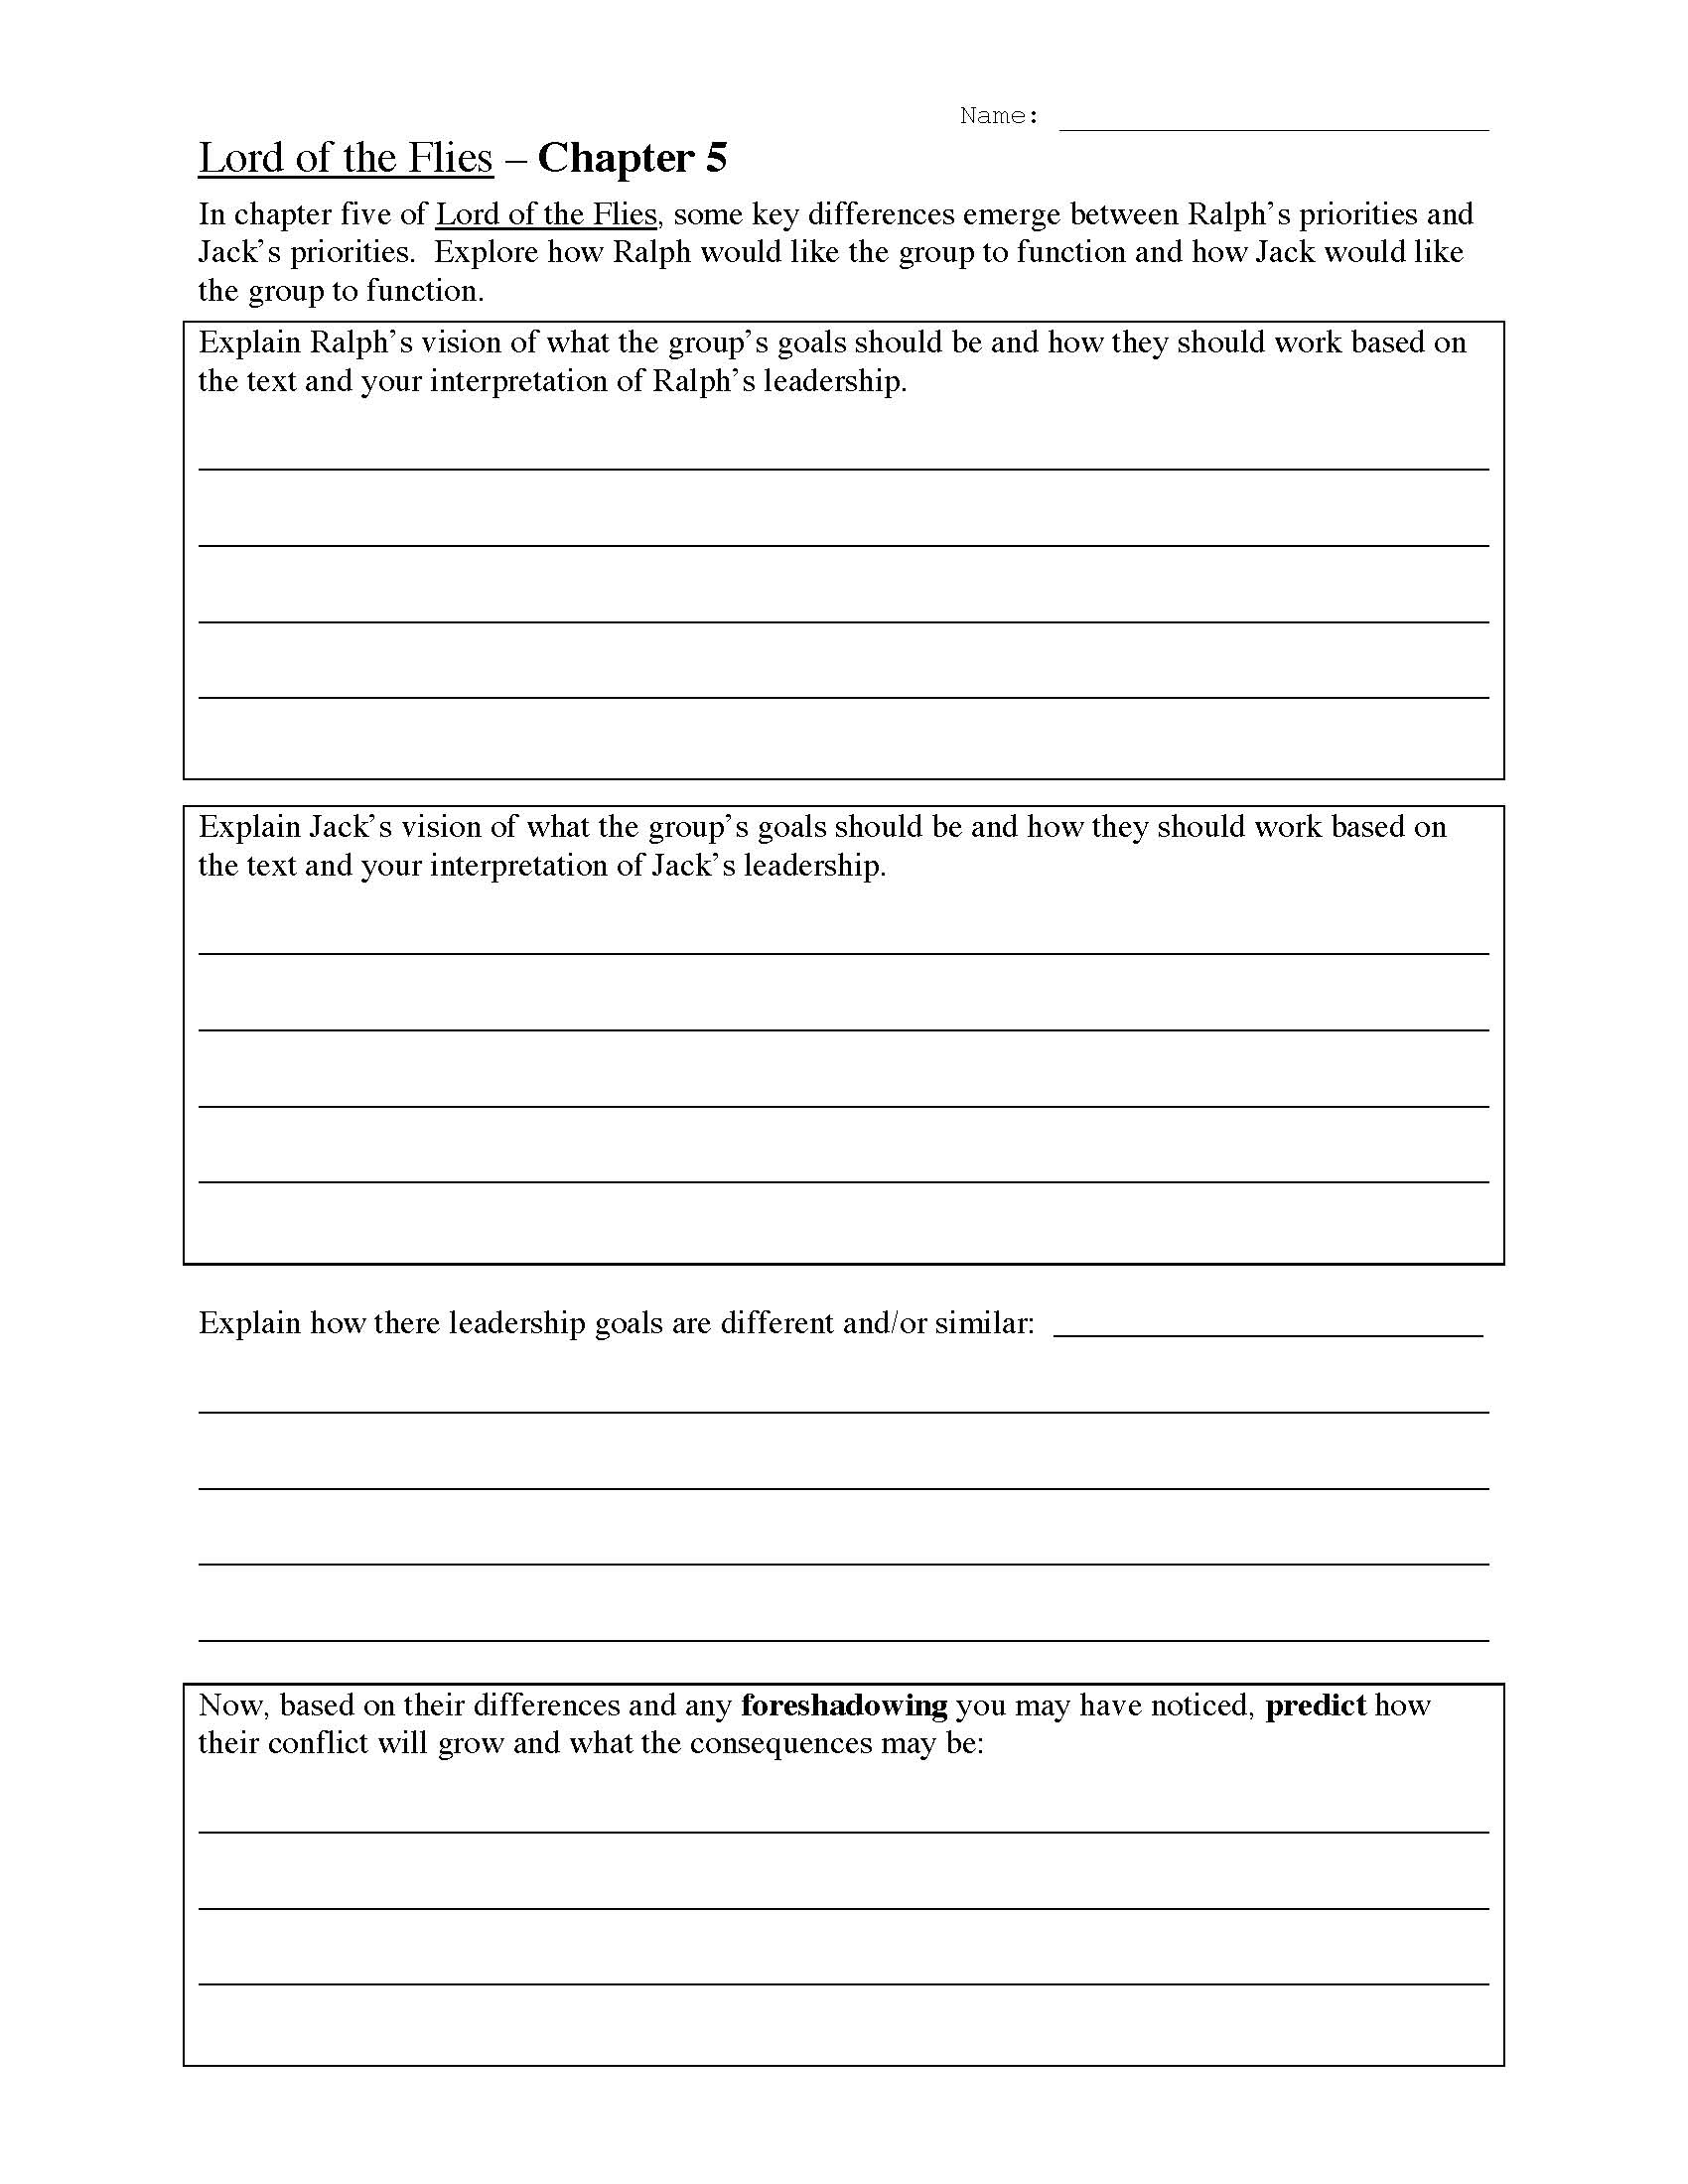 Worksheets Foreshadowing Worksheets lord of the flies chapter five worksheet preview this is a image worksheet